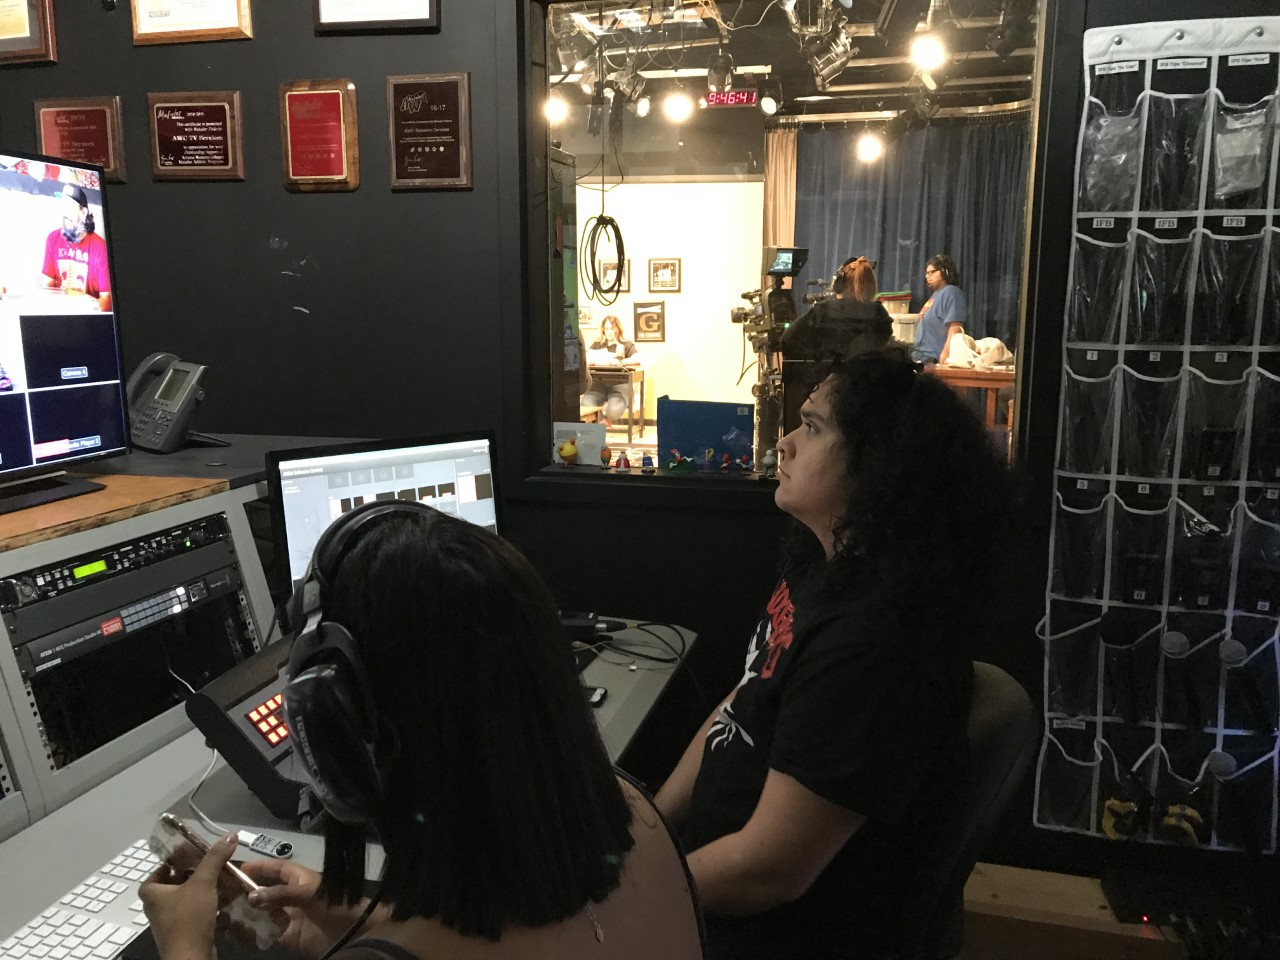 Students are seated by computers, working on the production of the show